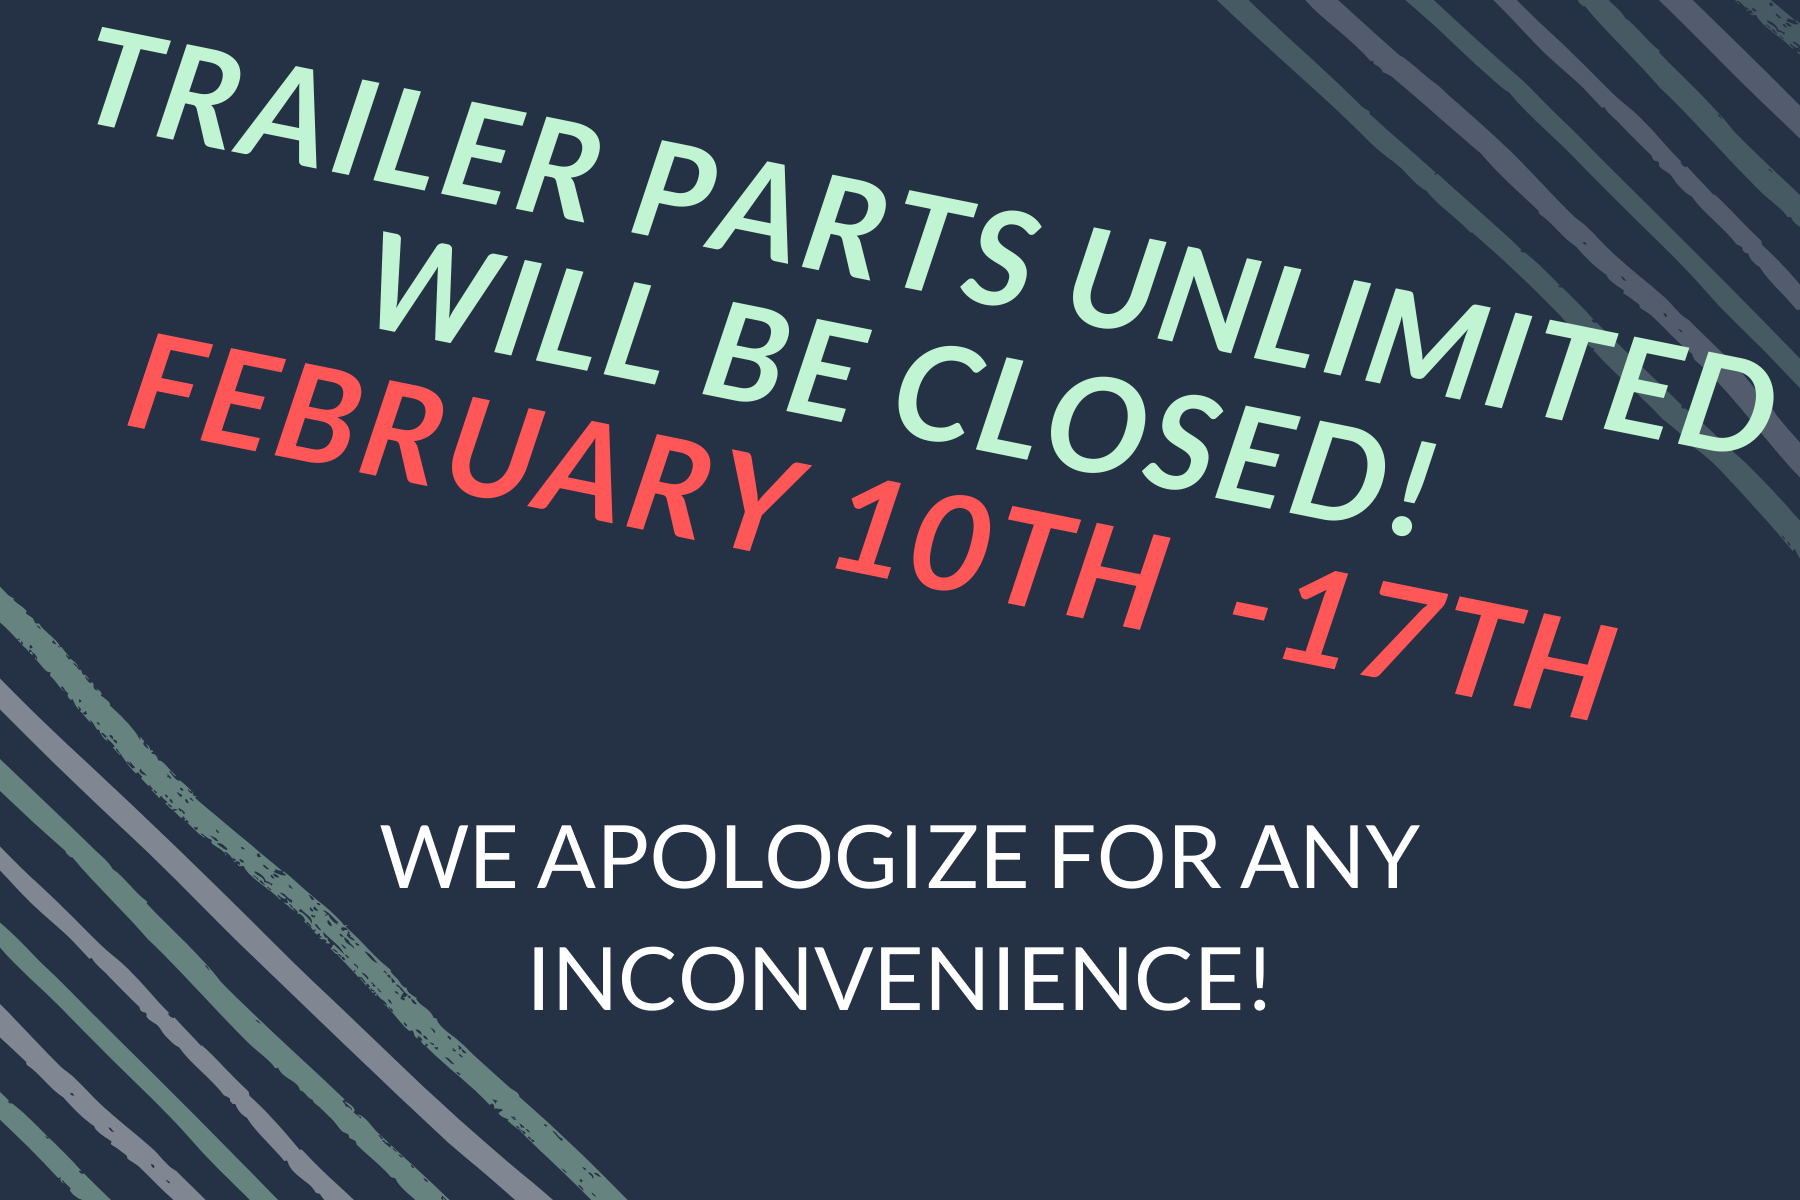 trailer-parts-unlimited-will-be-closed-december-9th-17th.png